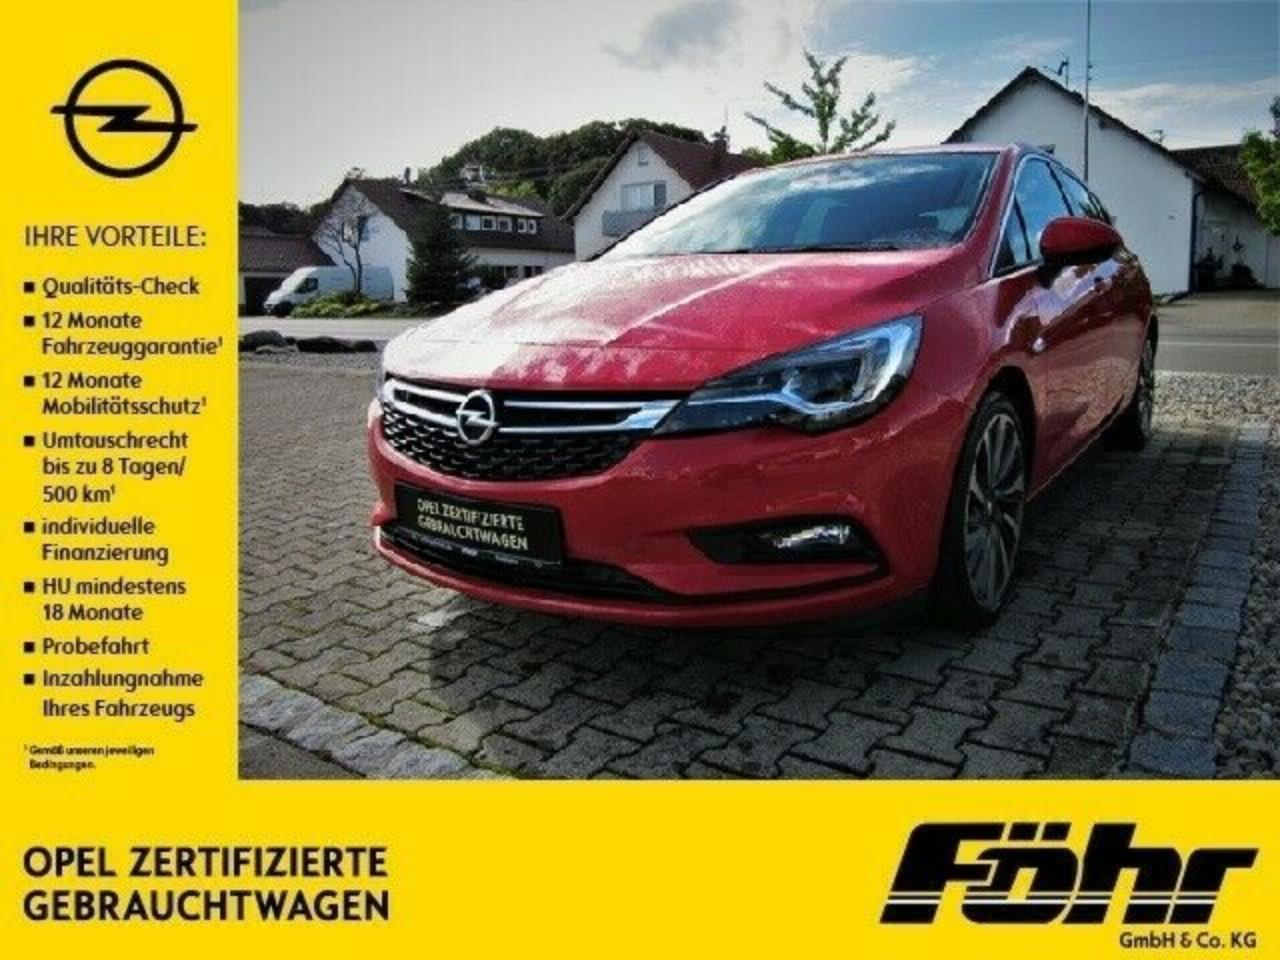 Opel Astra 1.4 Turbo 150 PS 6 MT ULTIMATE